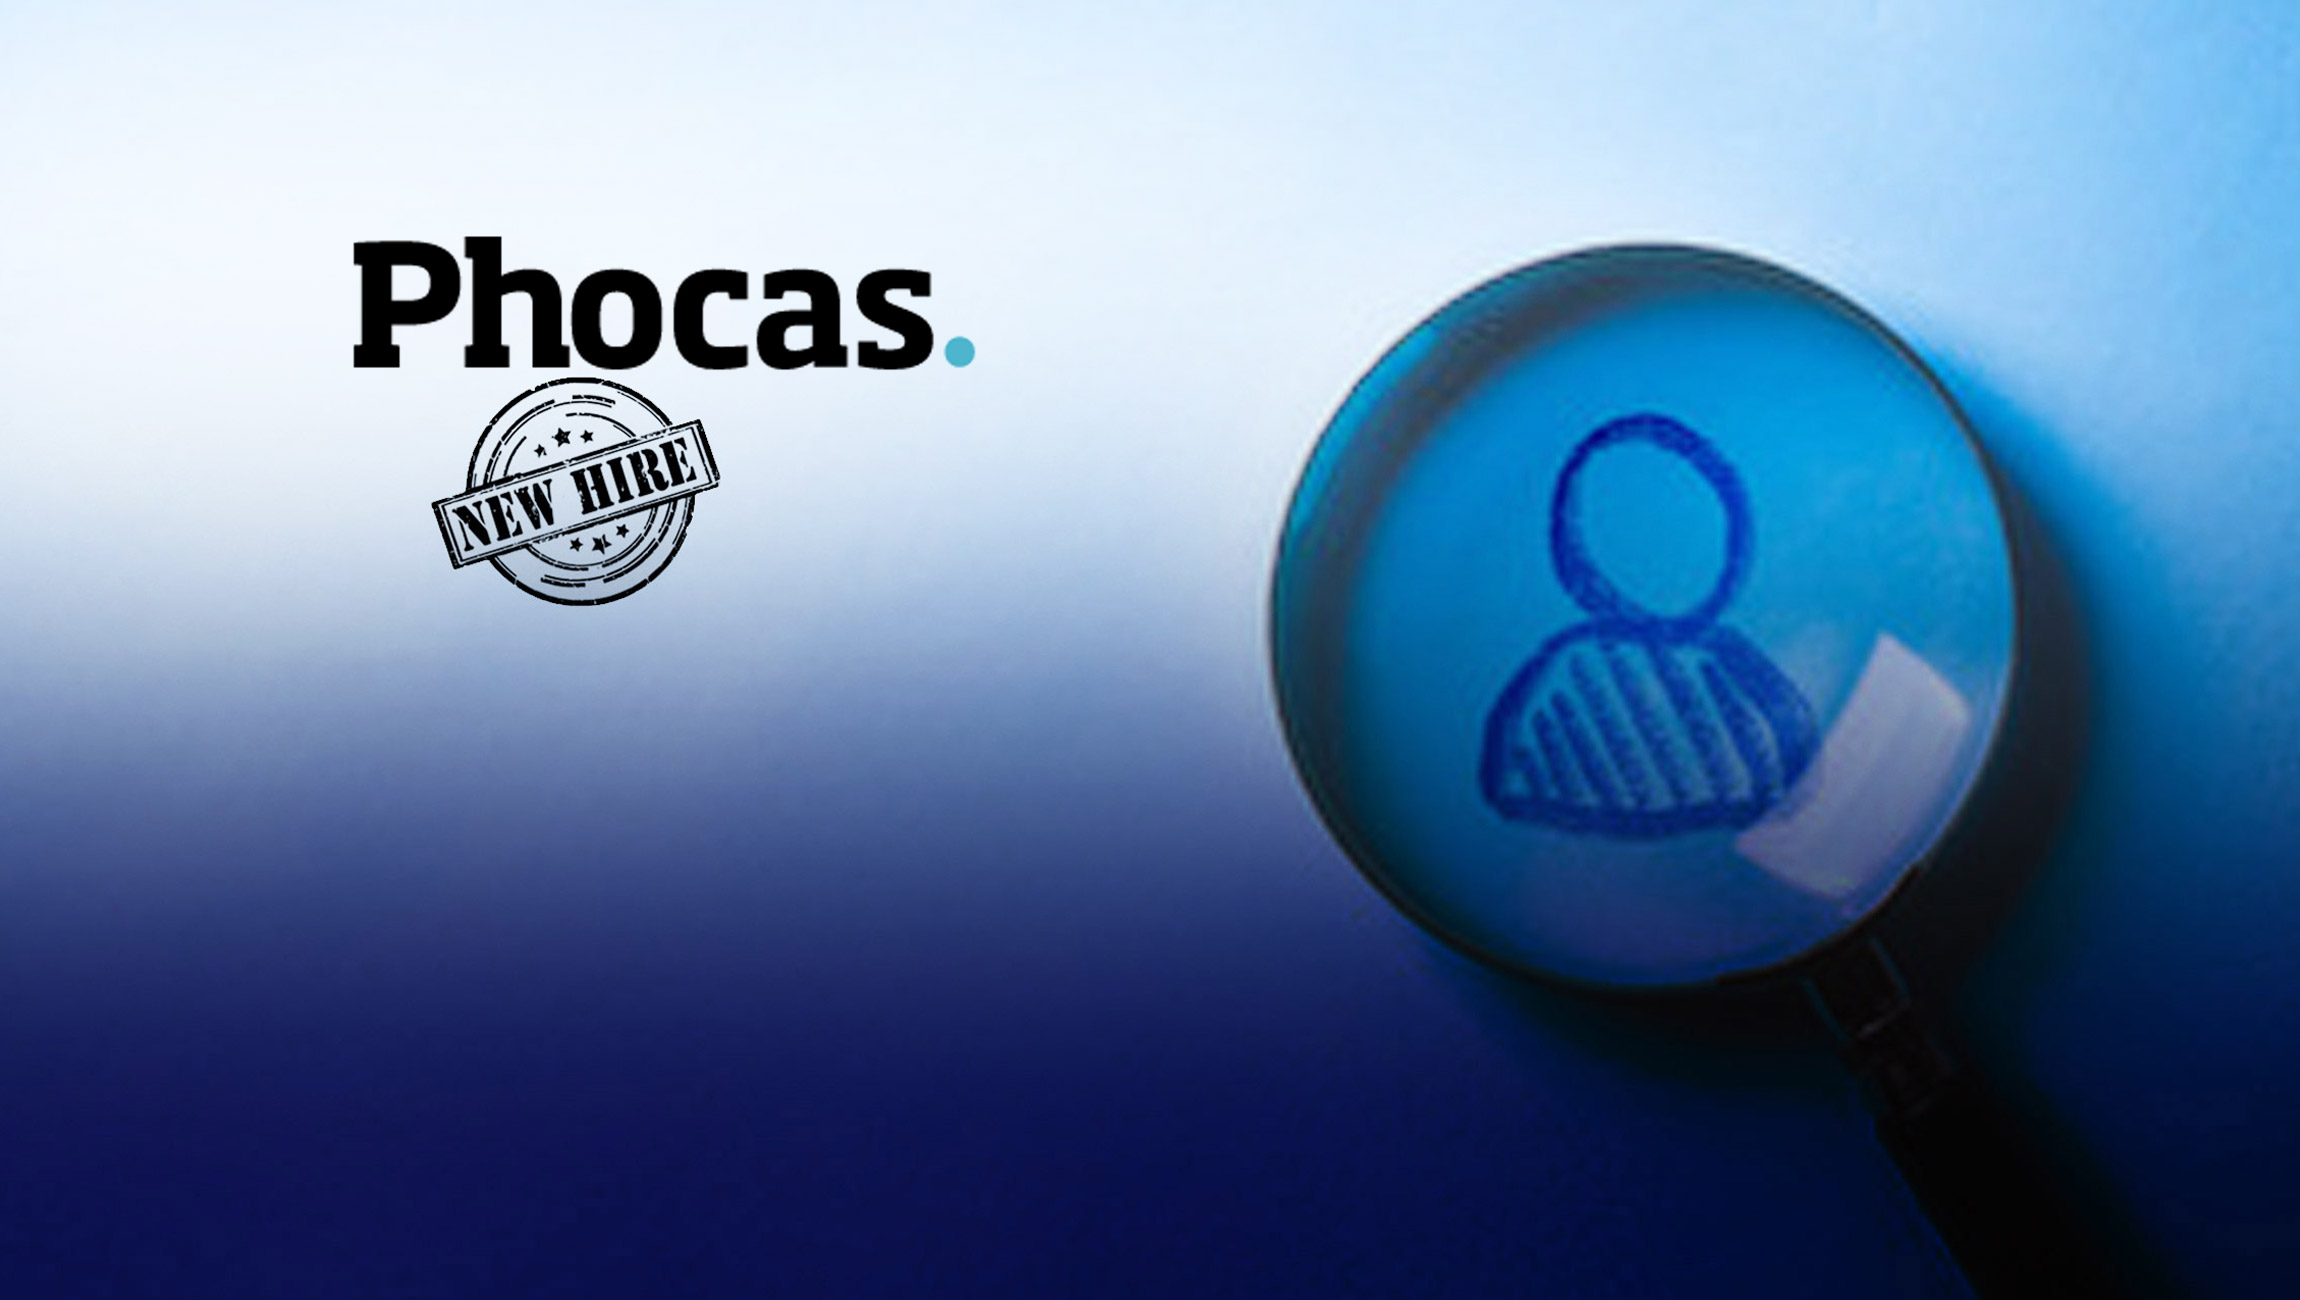 Phocas Appoints Prominent Chief Financial Officer for New Growth Cycle